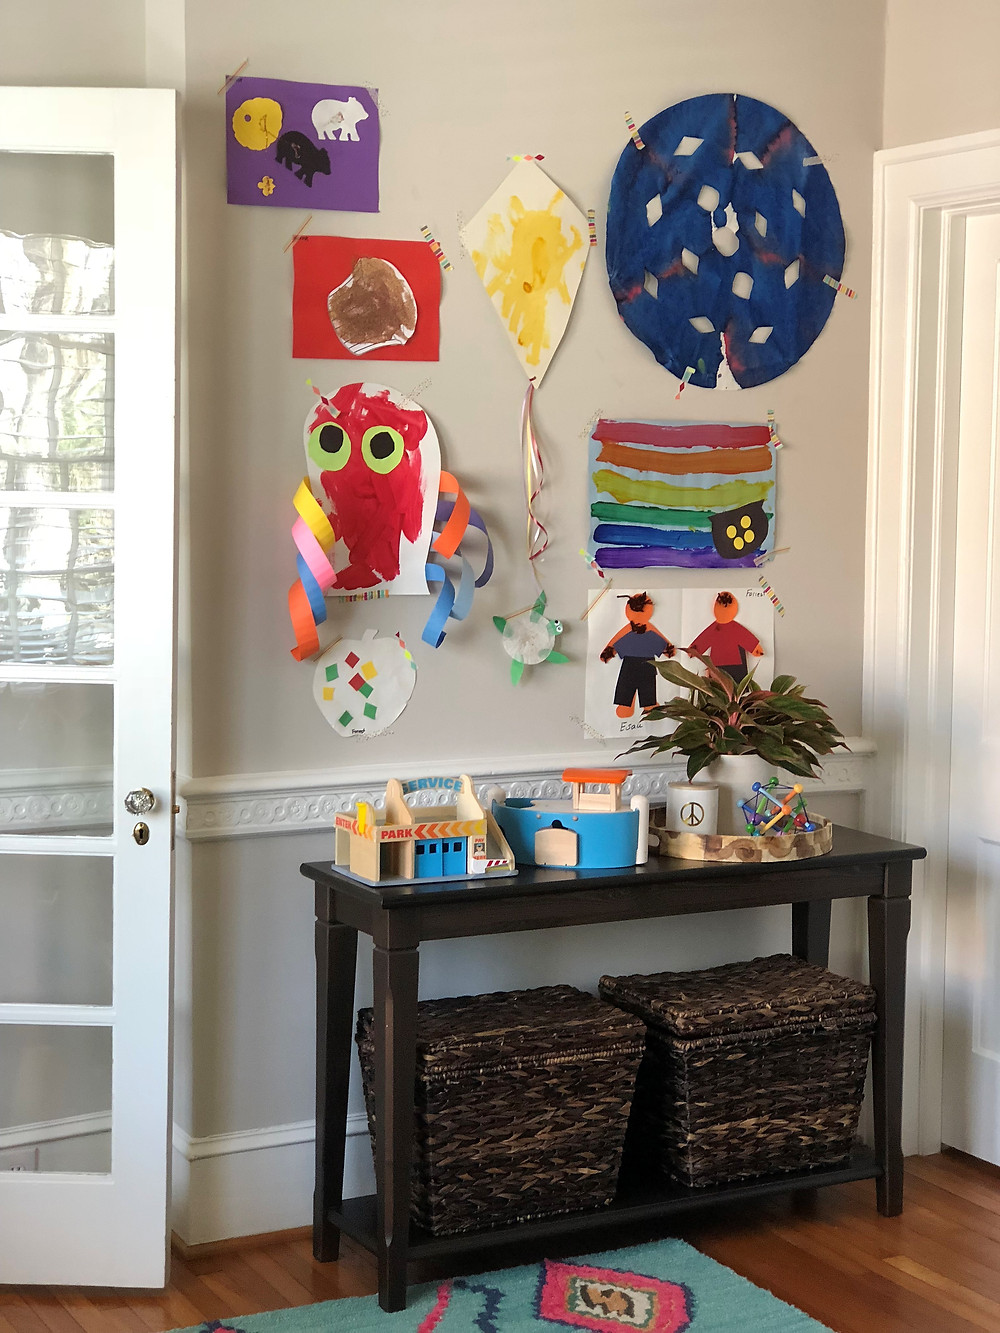 tip for displaying kids art in playroom using washi tape